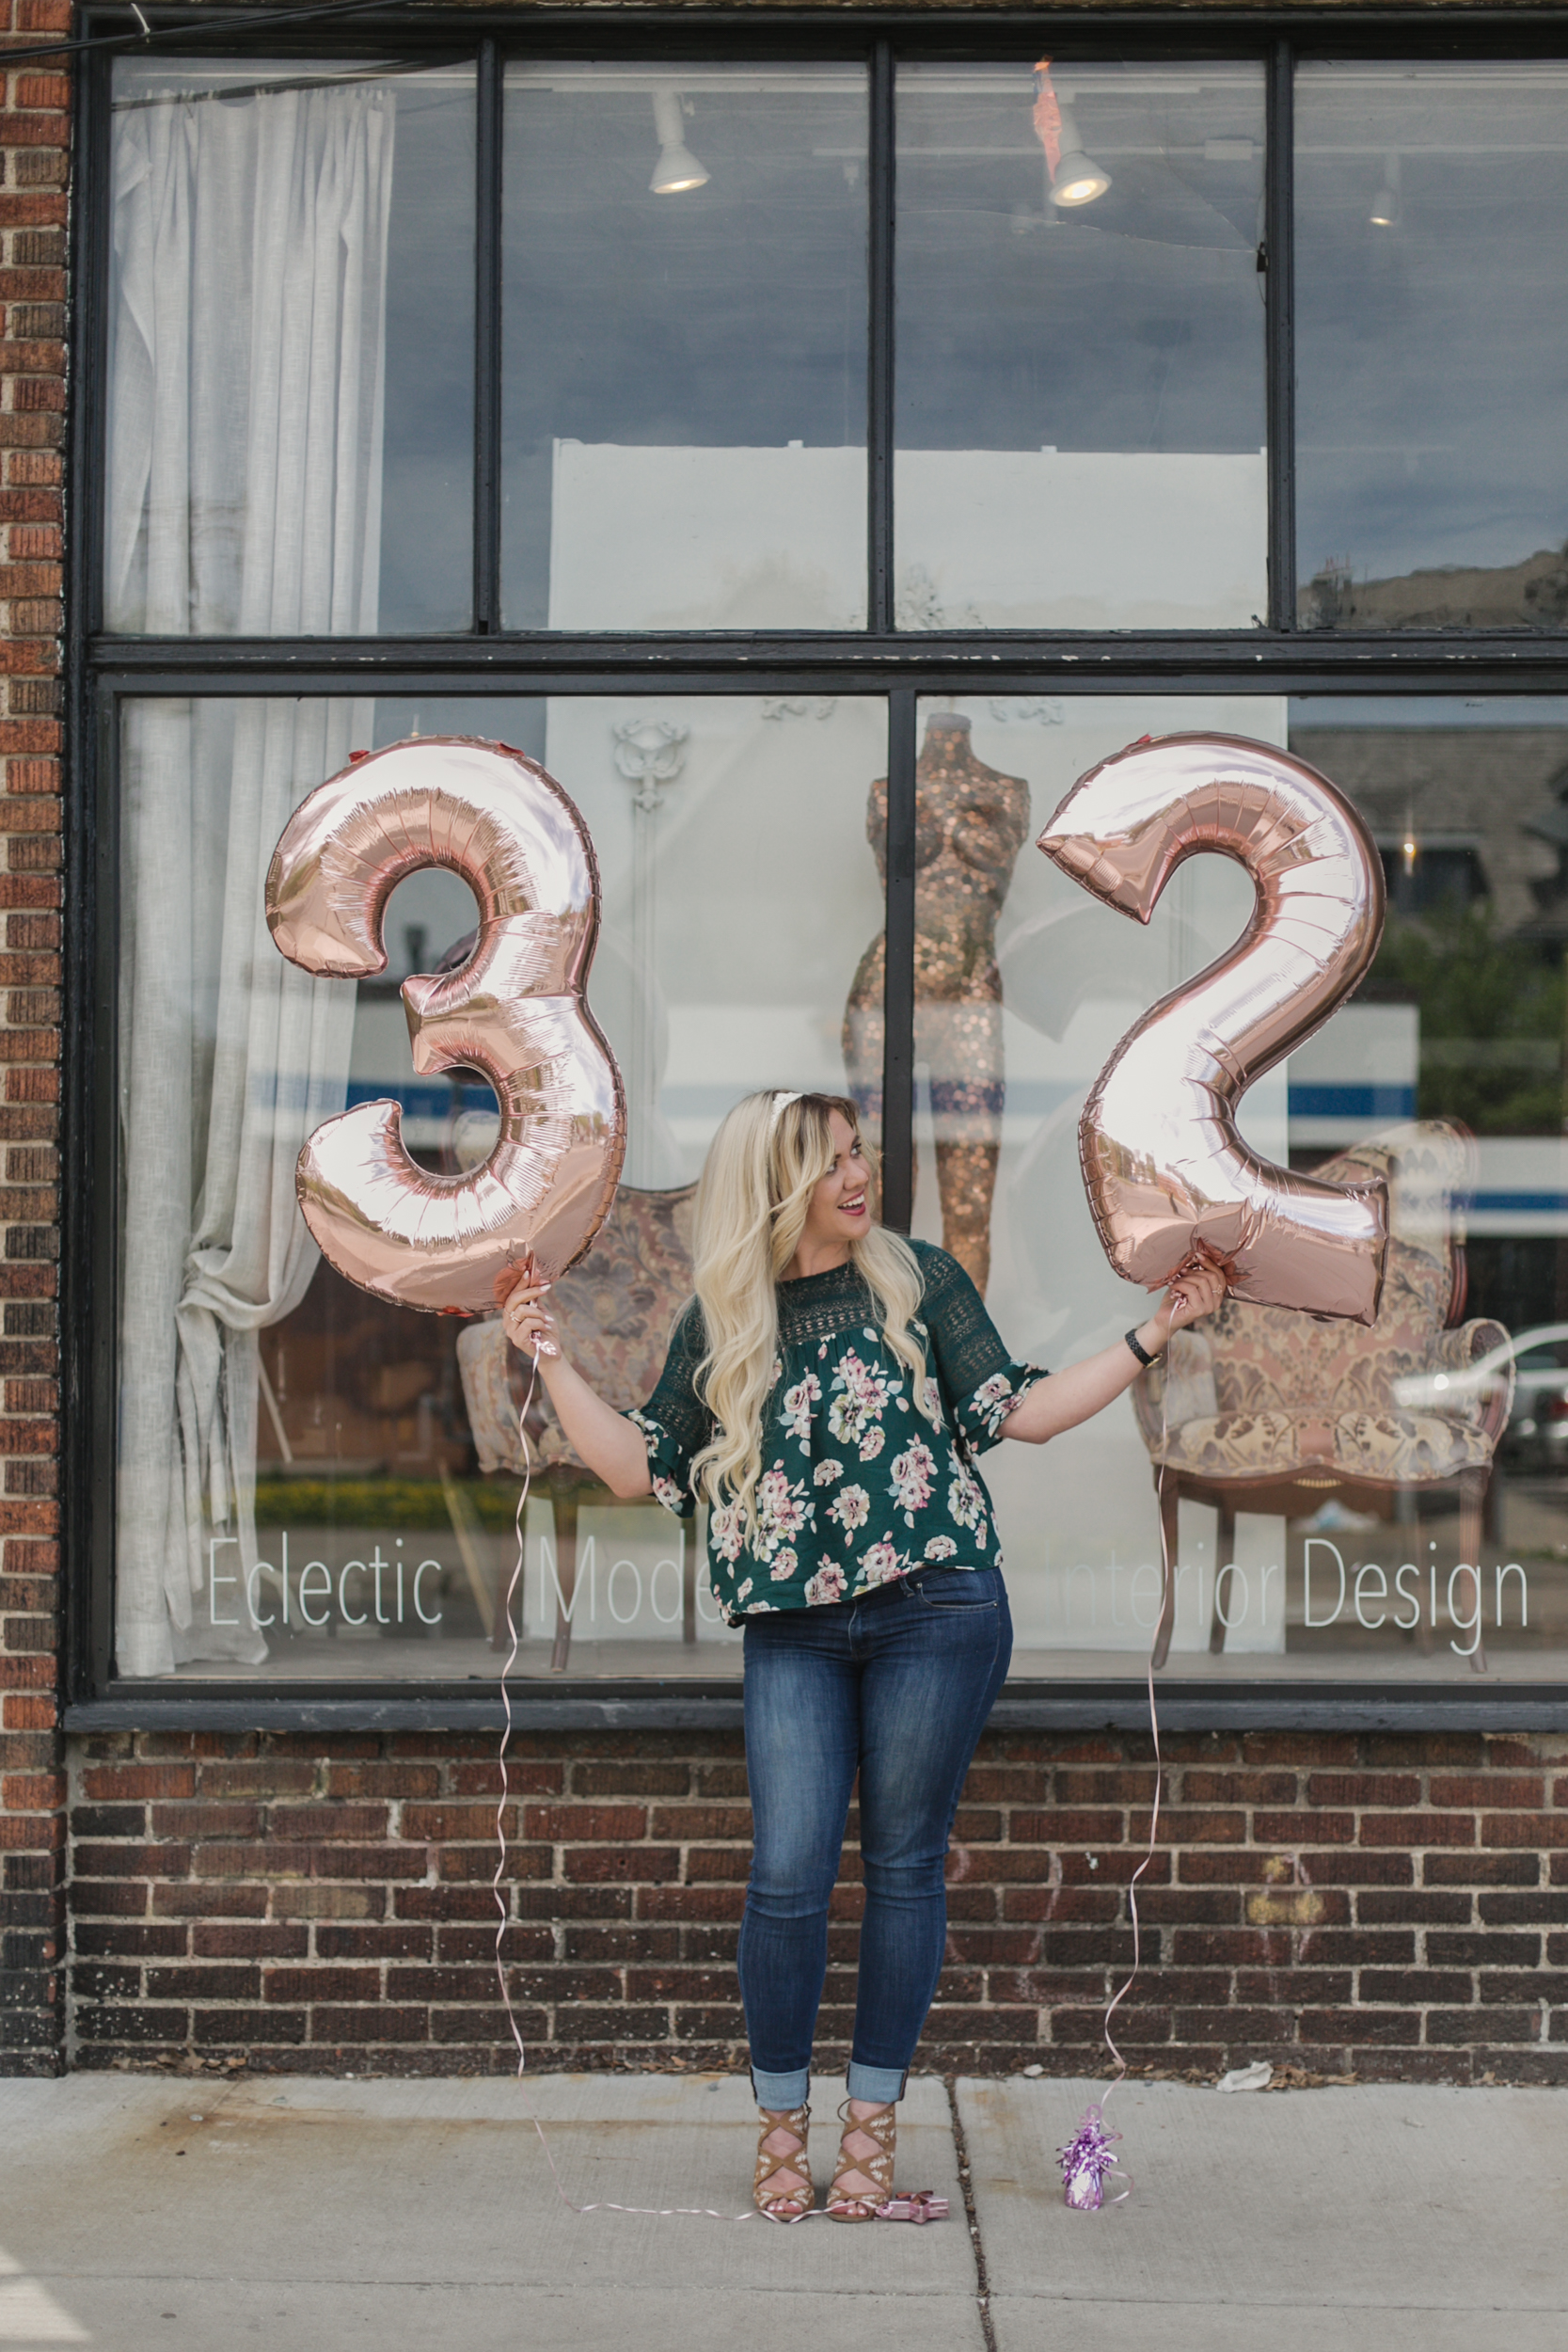 32 things i would tell my younger self, birthday shoot with number ballons, number balloons, rose gold number ballons-www.rachelsmak.com1.jpg